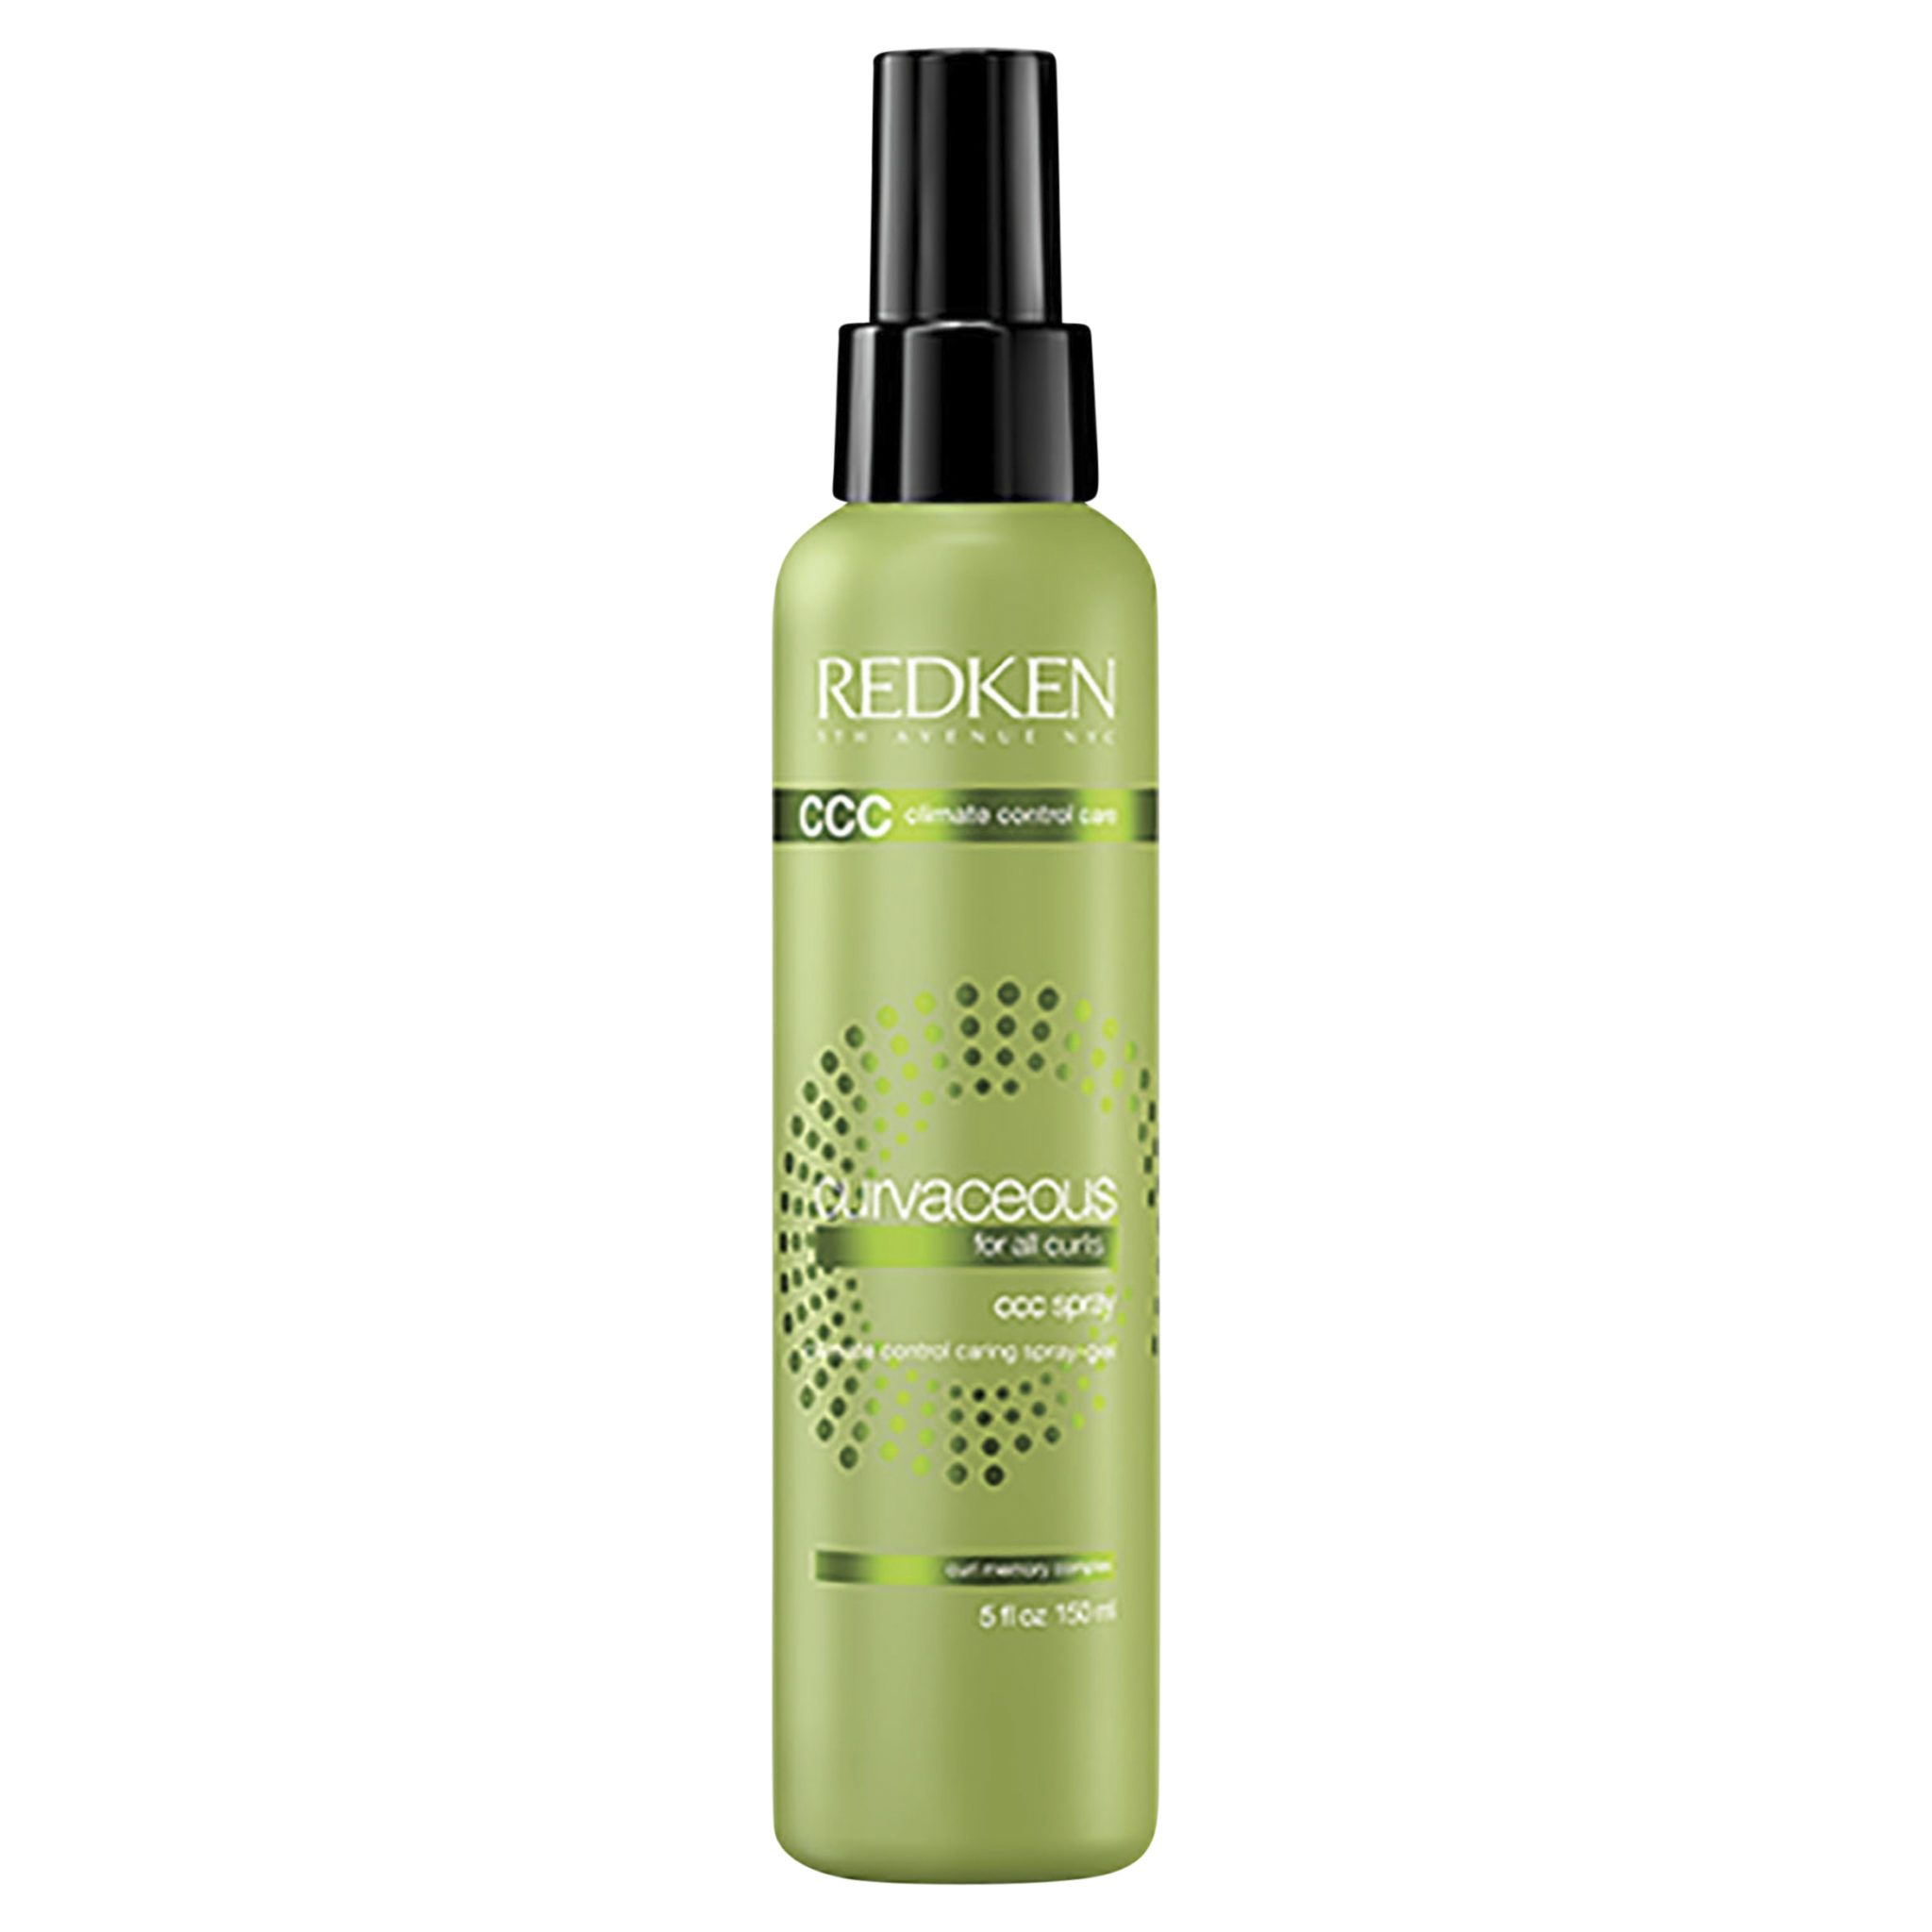 Redken Curvaceour Ccc Spray